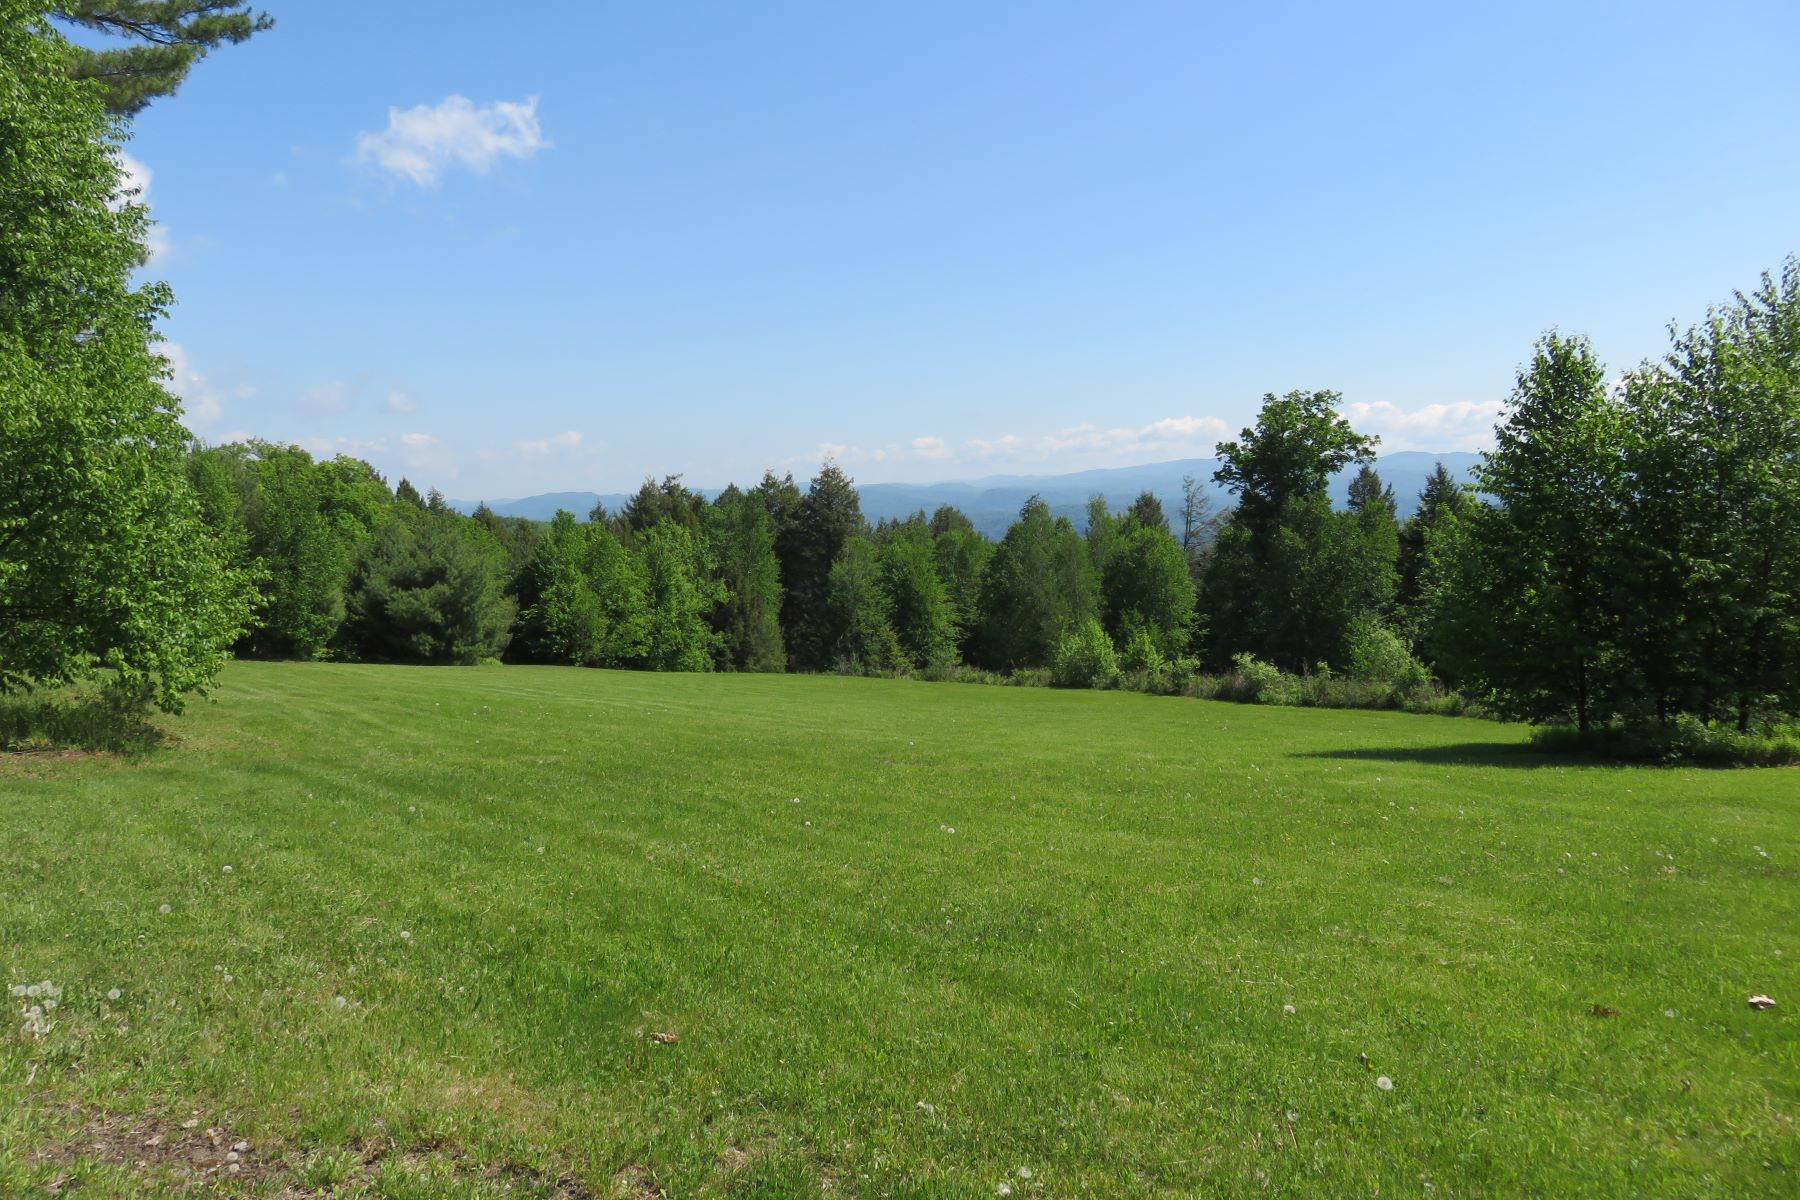 Land for Sale at Land with a View in Weathersfield 0 Divoll Pasture Rd Weathersfield, Vermont 05156 United States